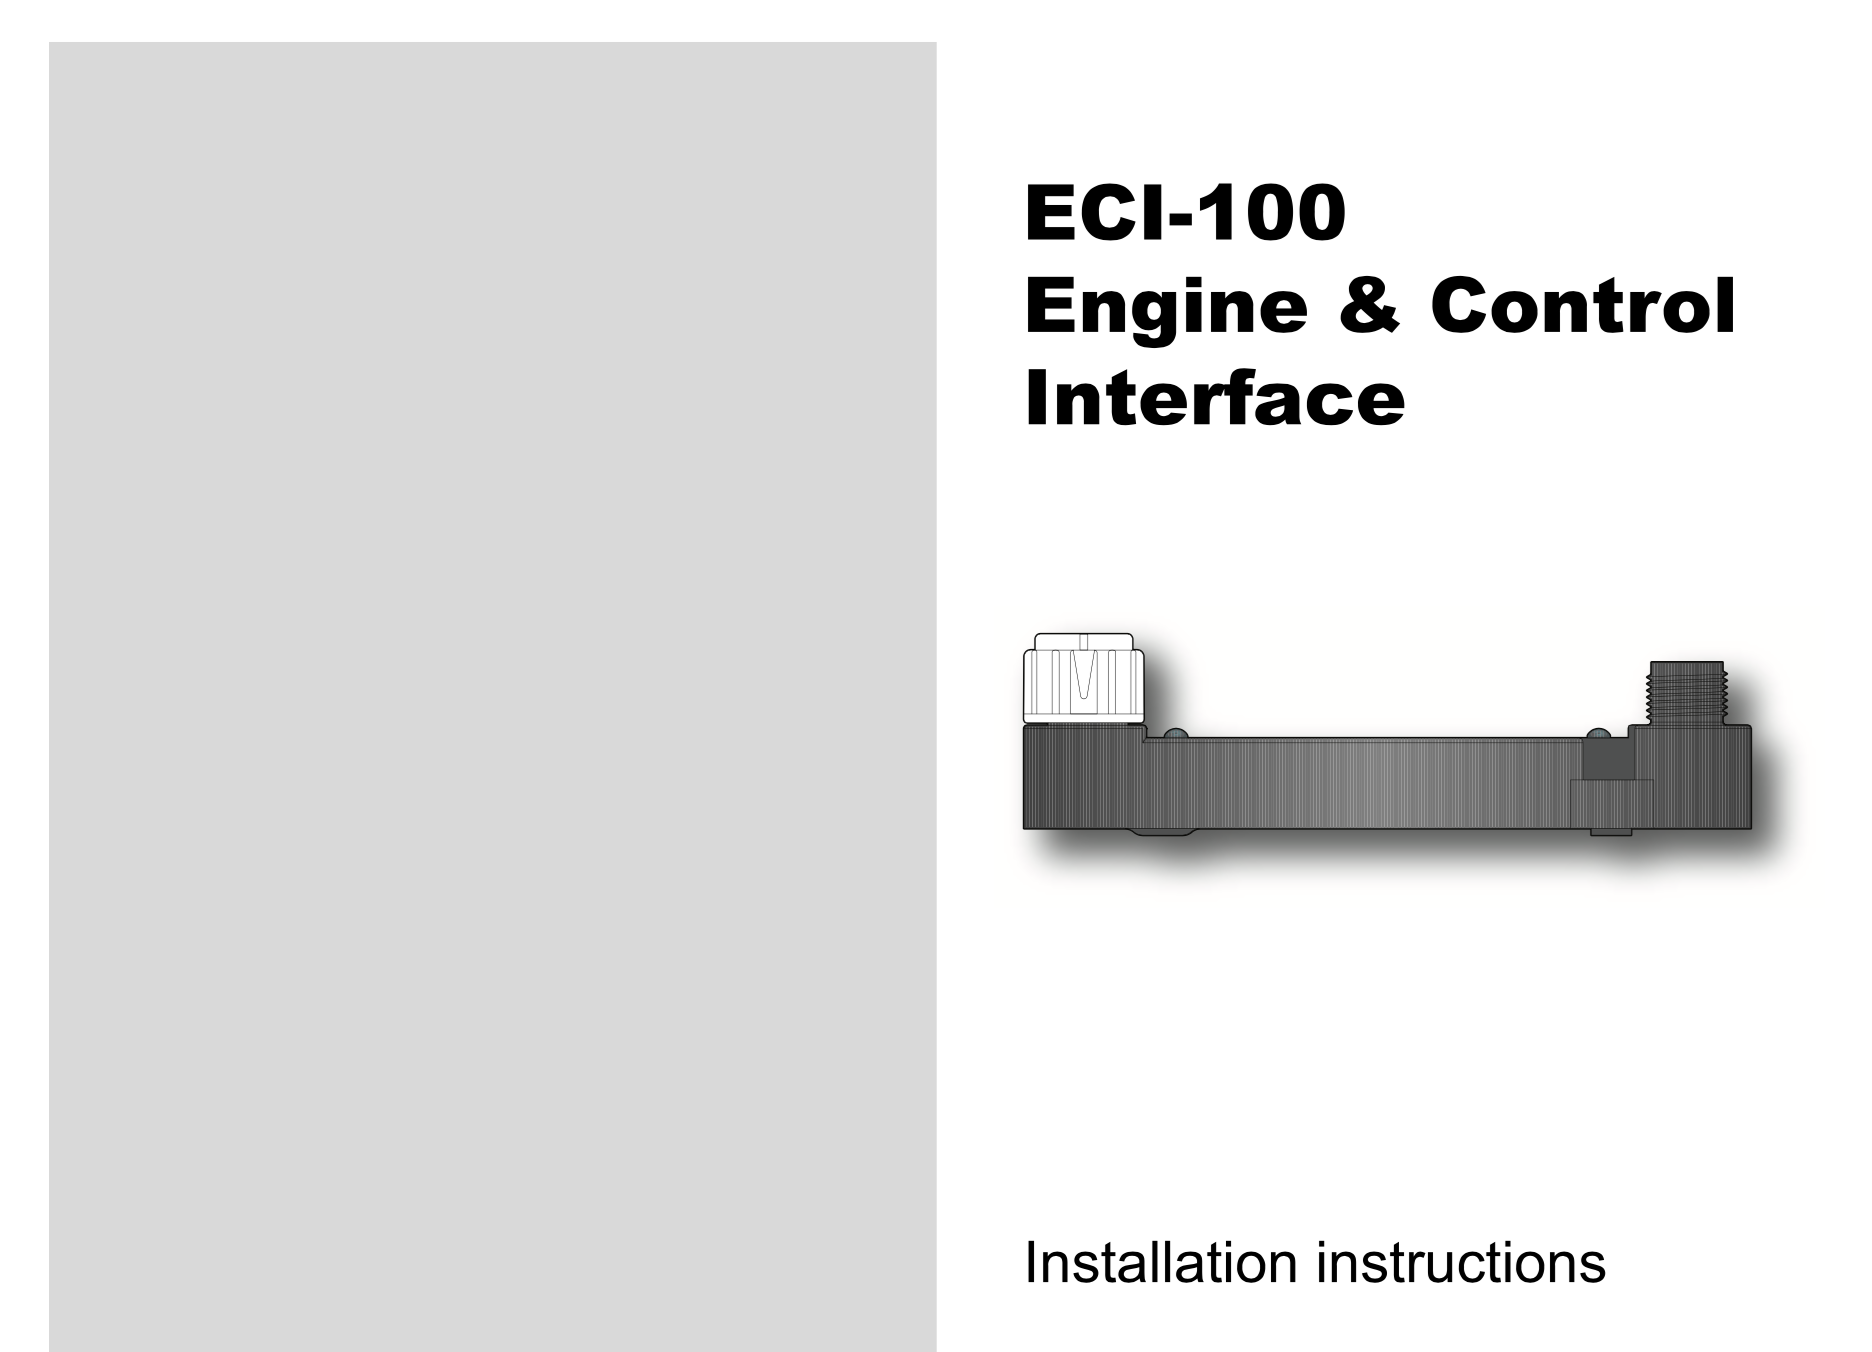 eci-100 engine control interface installation instructions